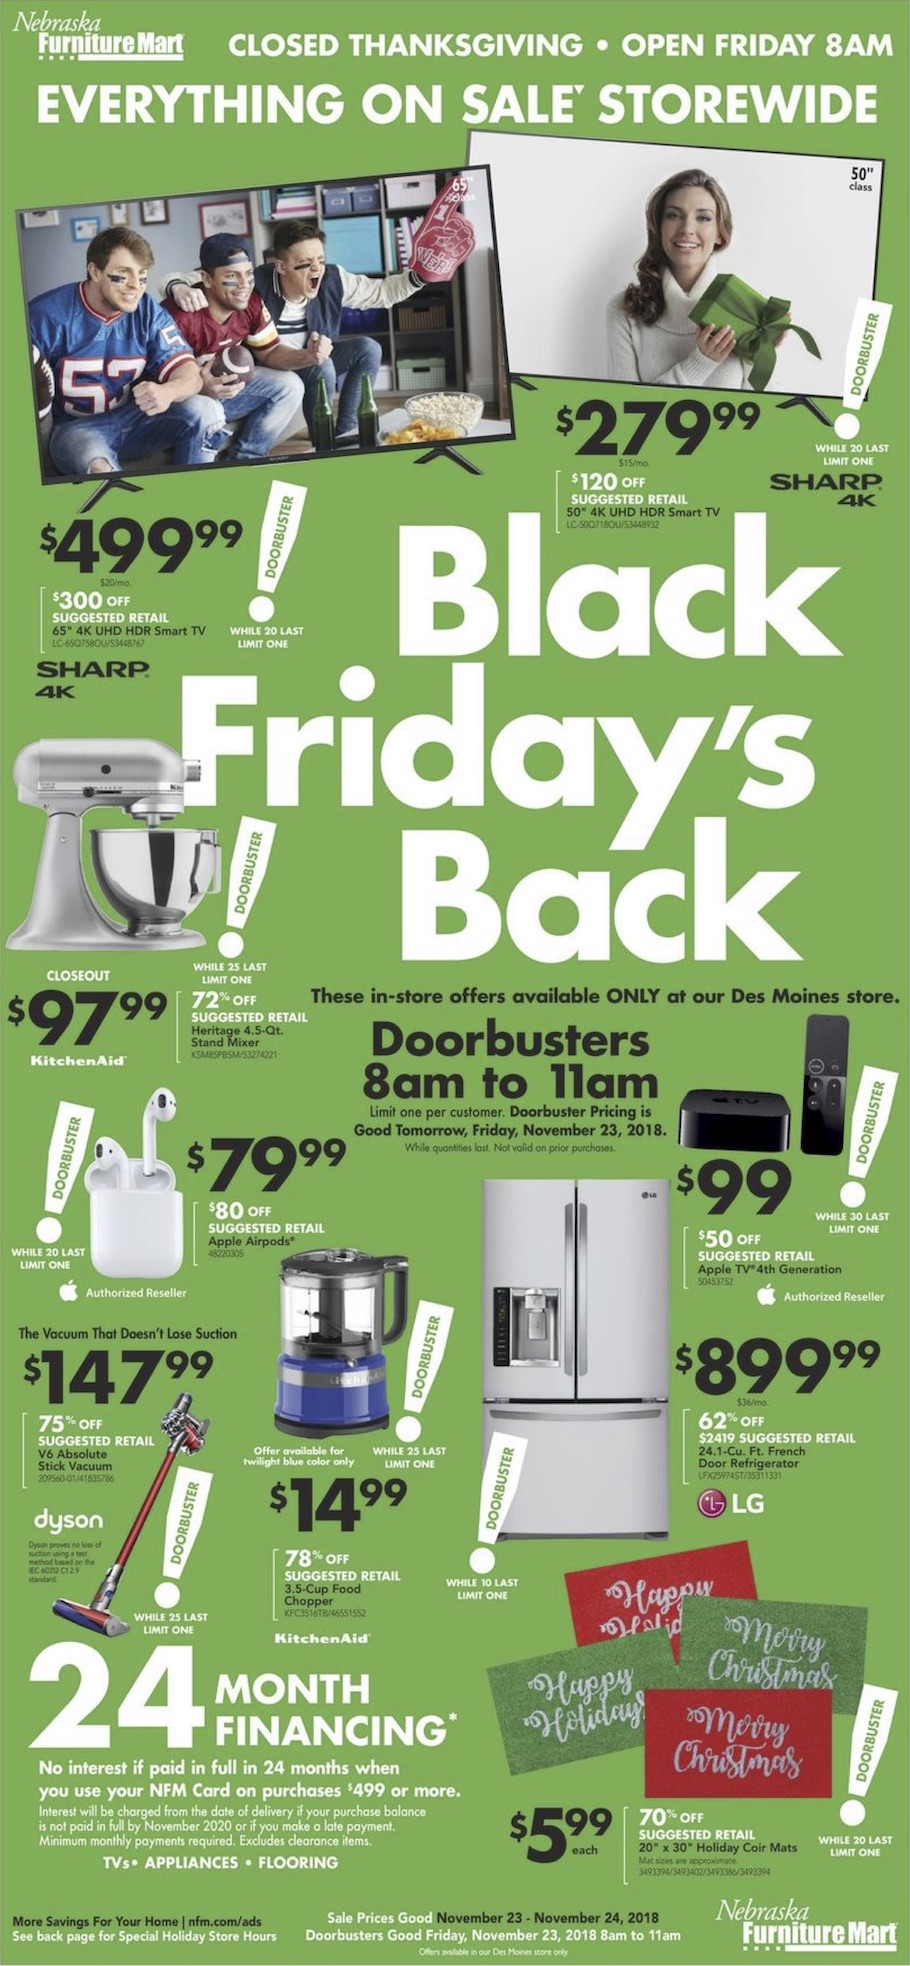 Nebraska Furniture Mart 2018 Black Friday Ad